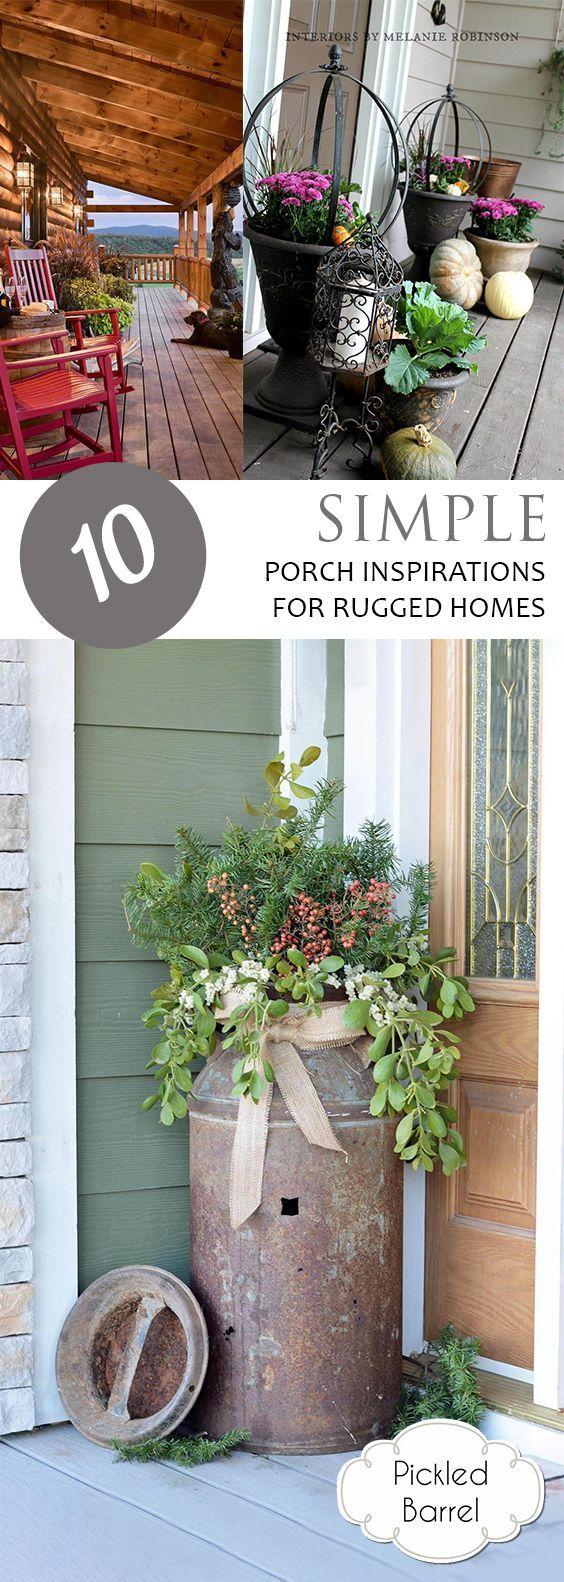 10 Simple Porch Inspirations for Rugged Homes – Pickled Barrel